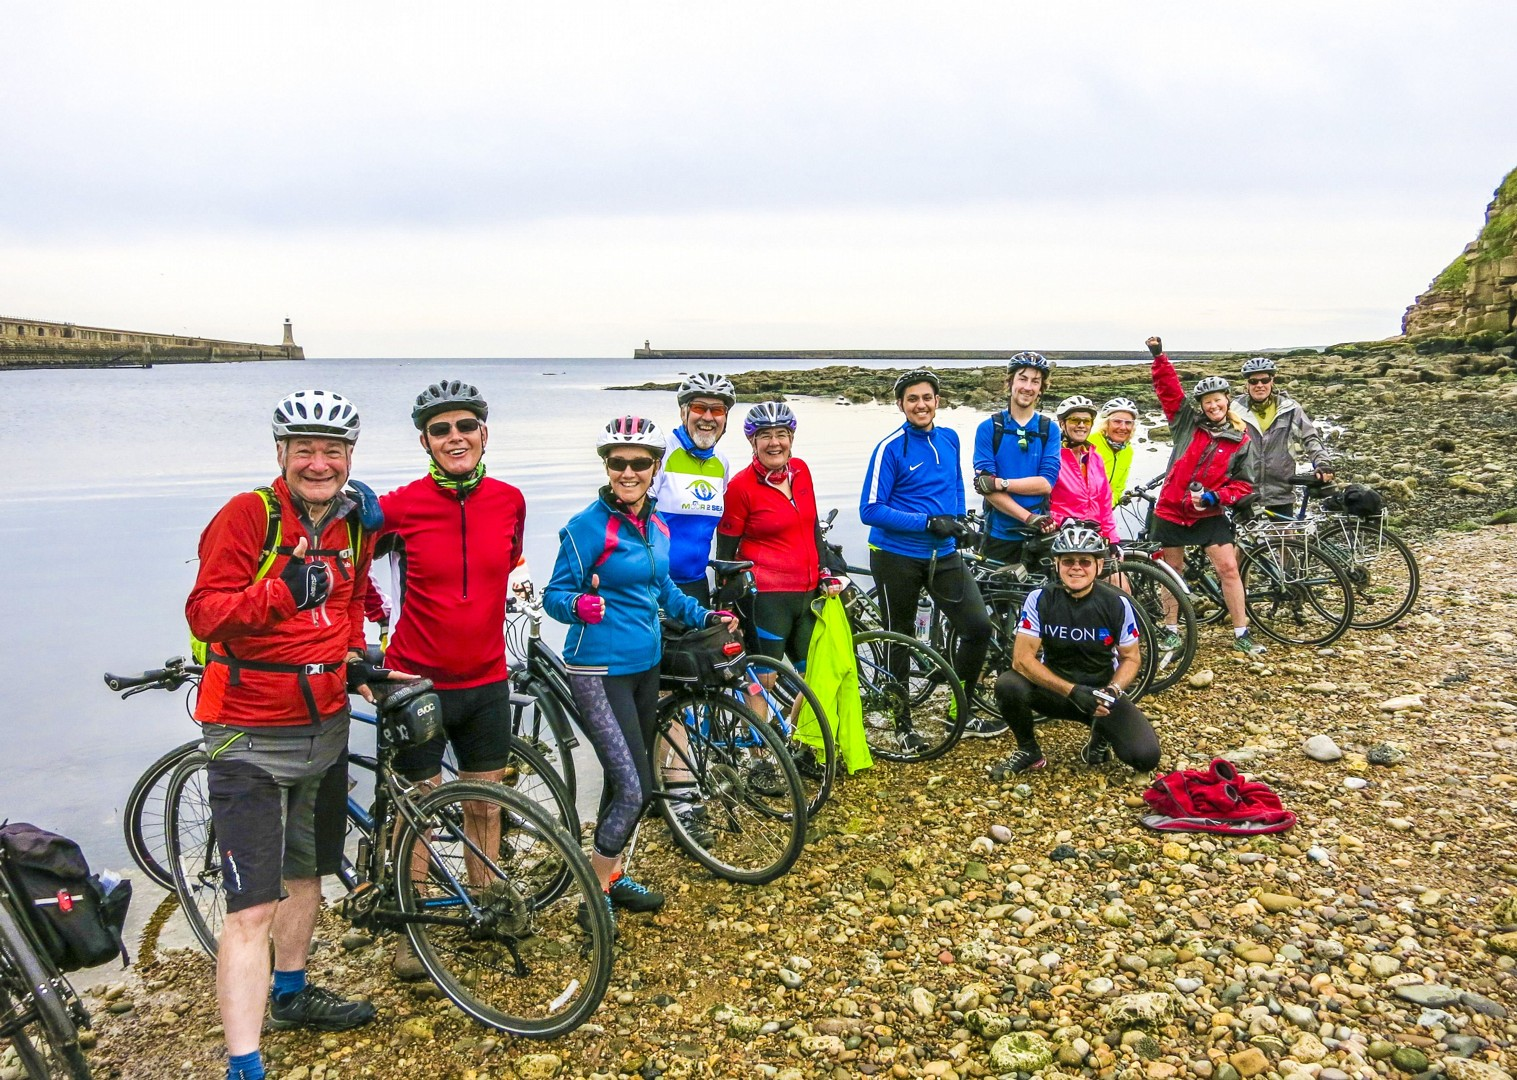 group-cycling-holiday-supported-coast-to-coast.jpg - UK - C2C - Coast to Coast - Supported Leisure Cycling Holiday - Leisure Cycling